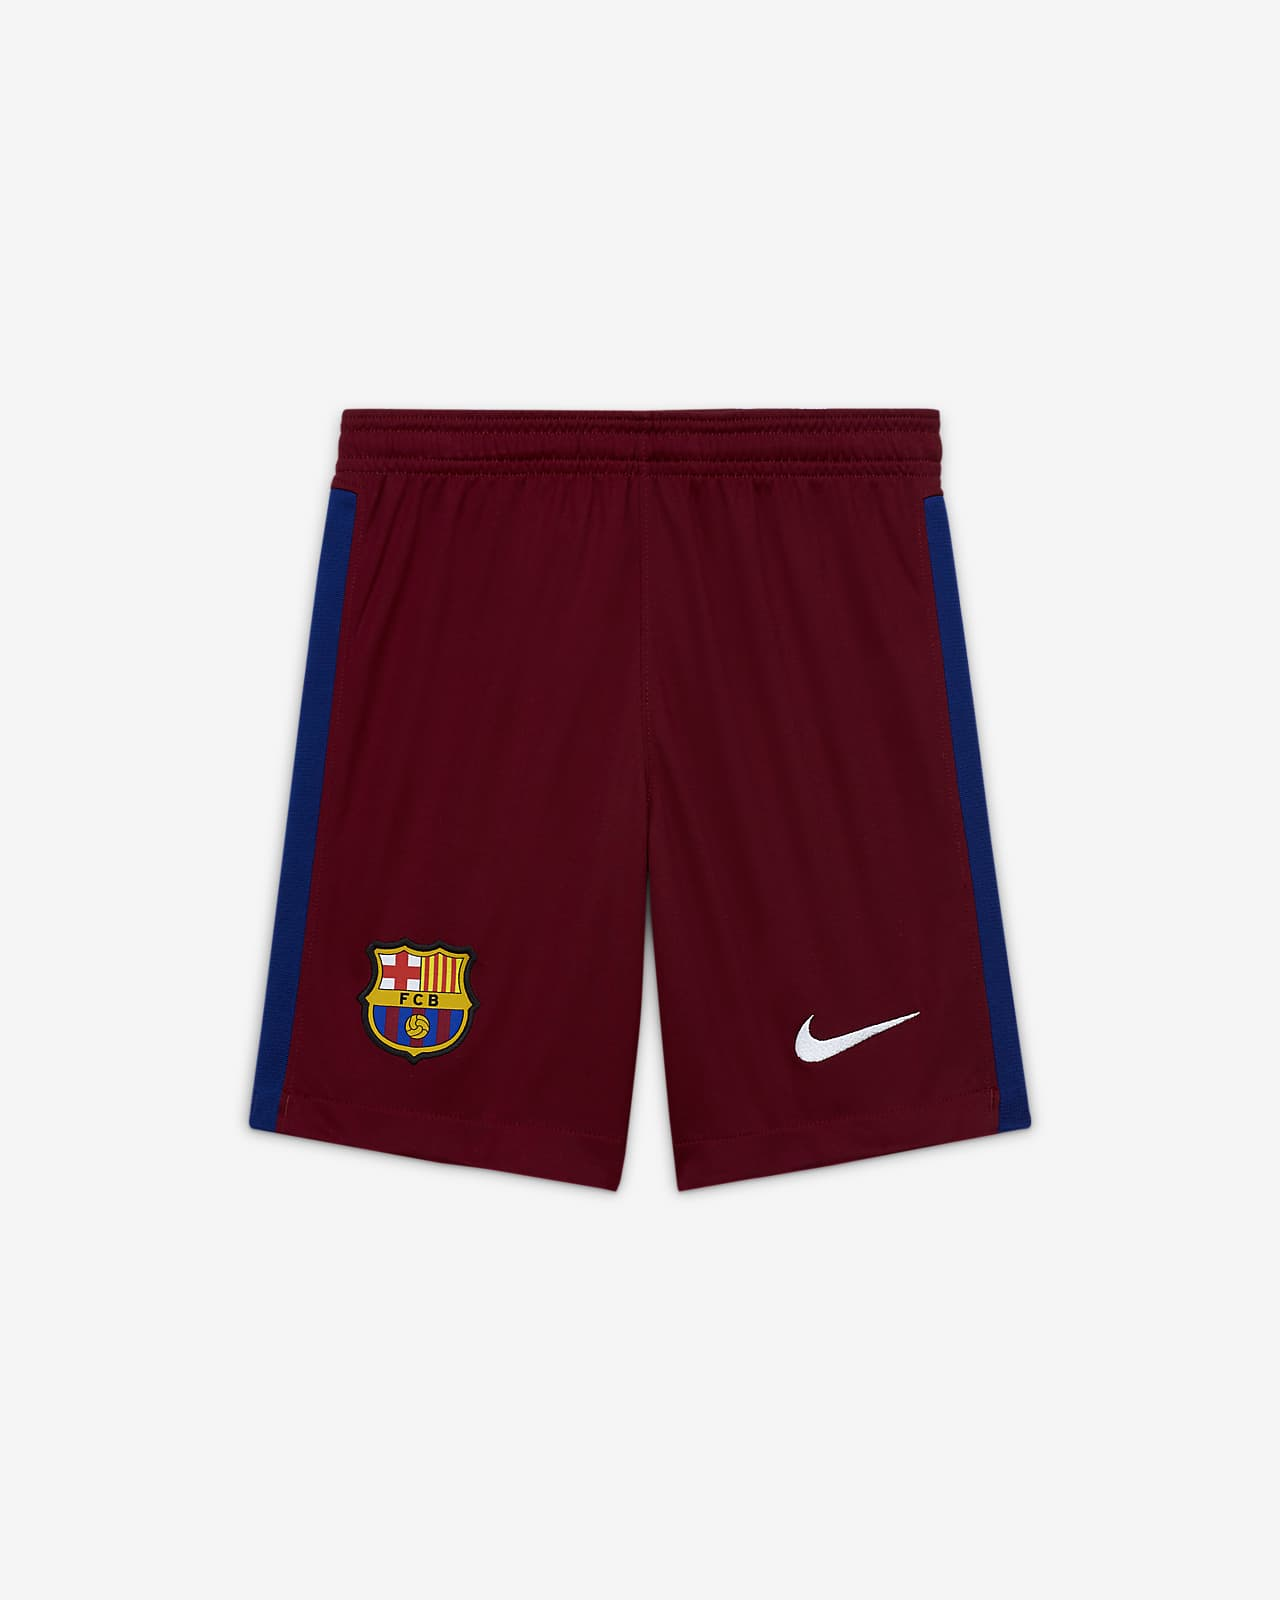 F.C. Barcelona 2020/21 Stadium Goalkeeper Older Kids' Football Shorts